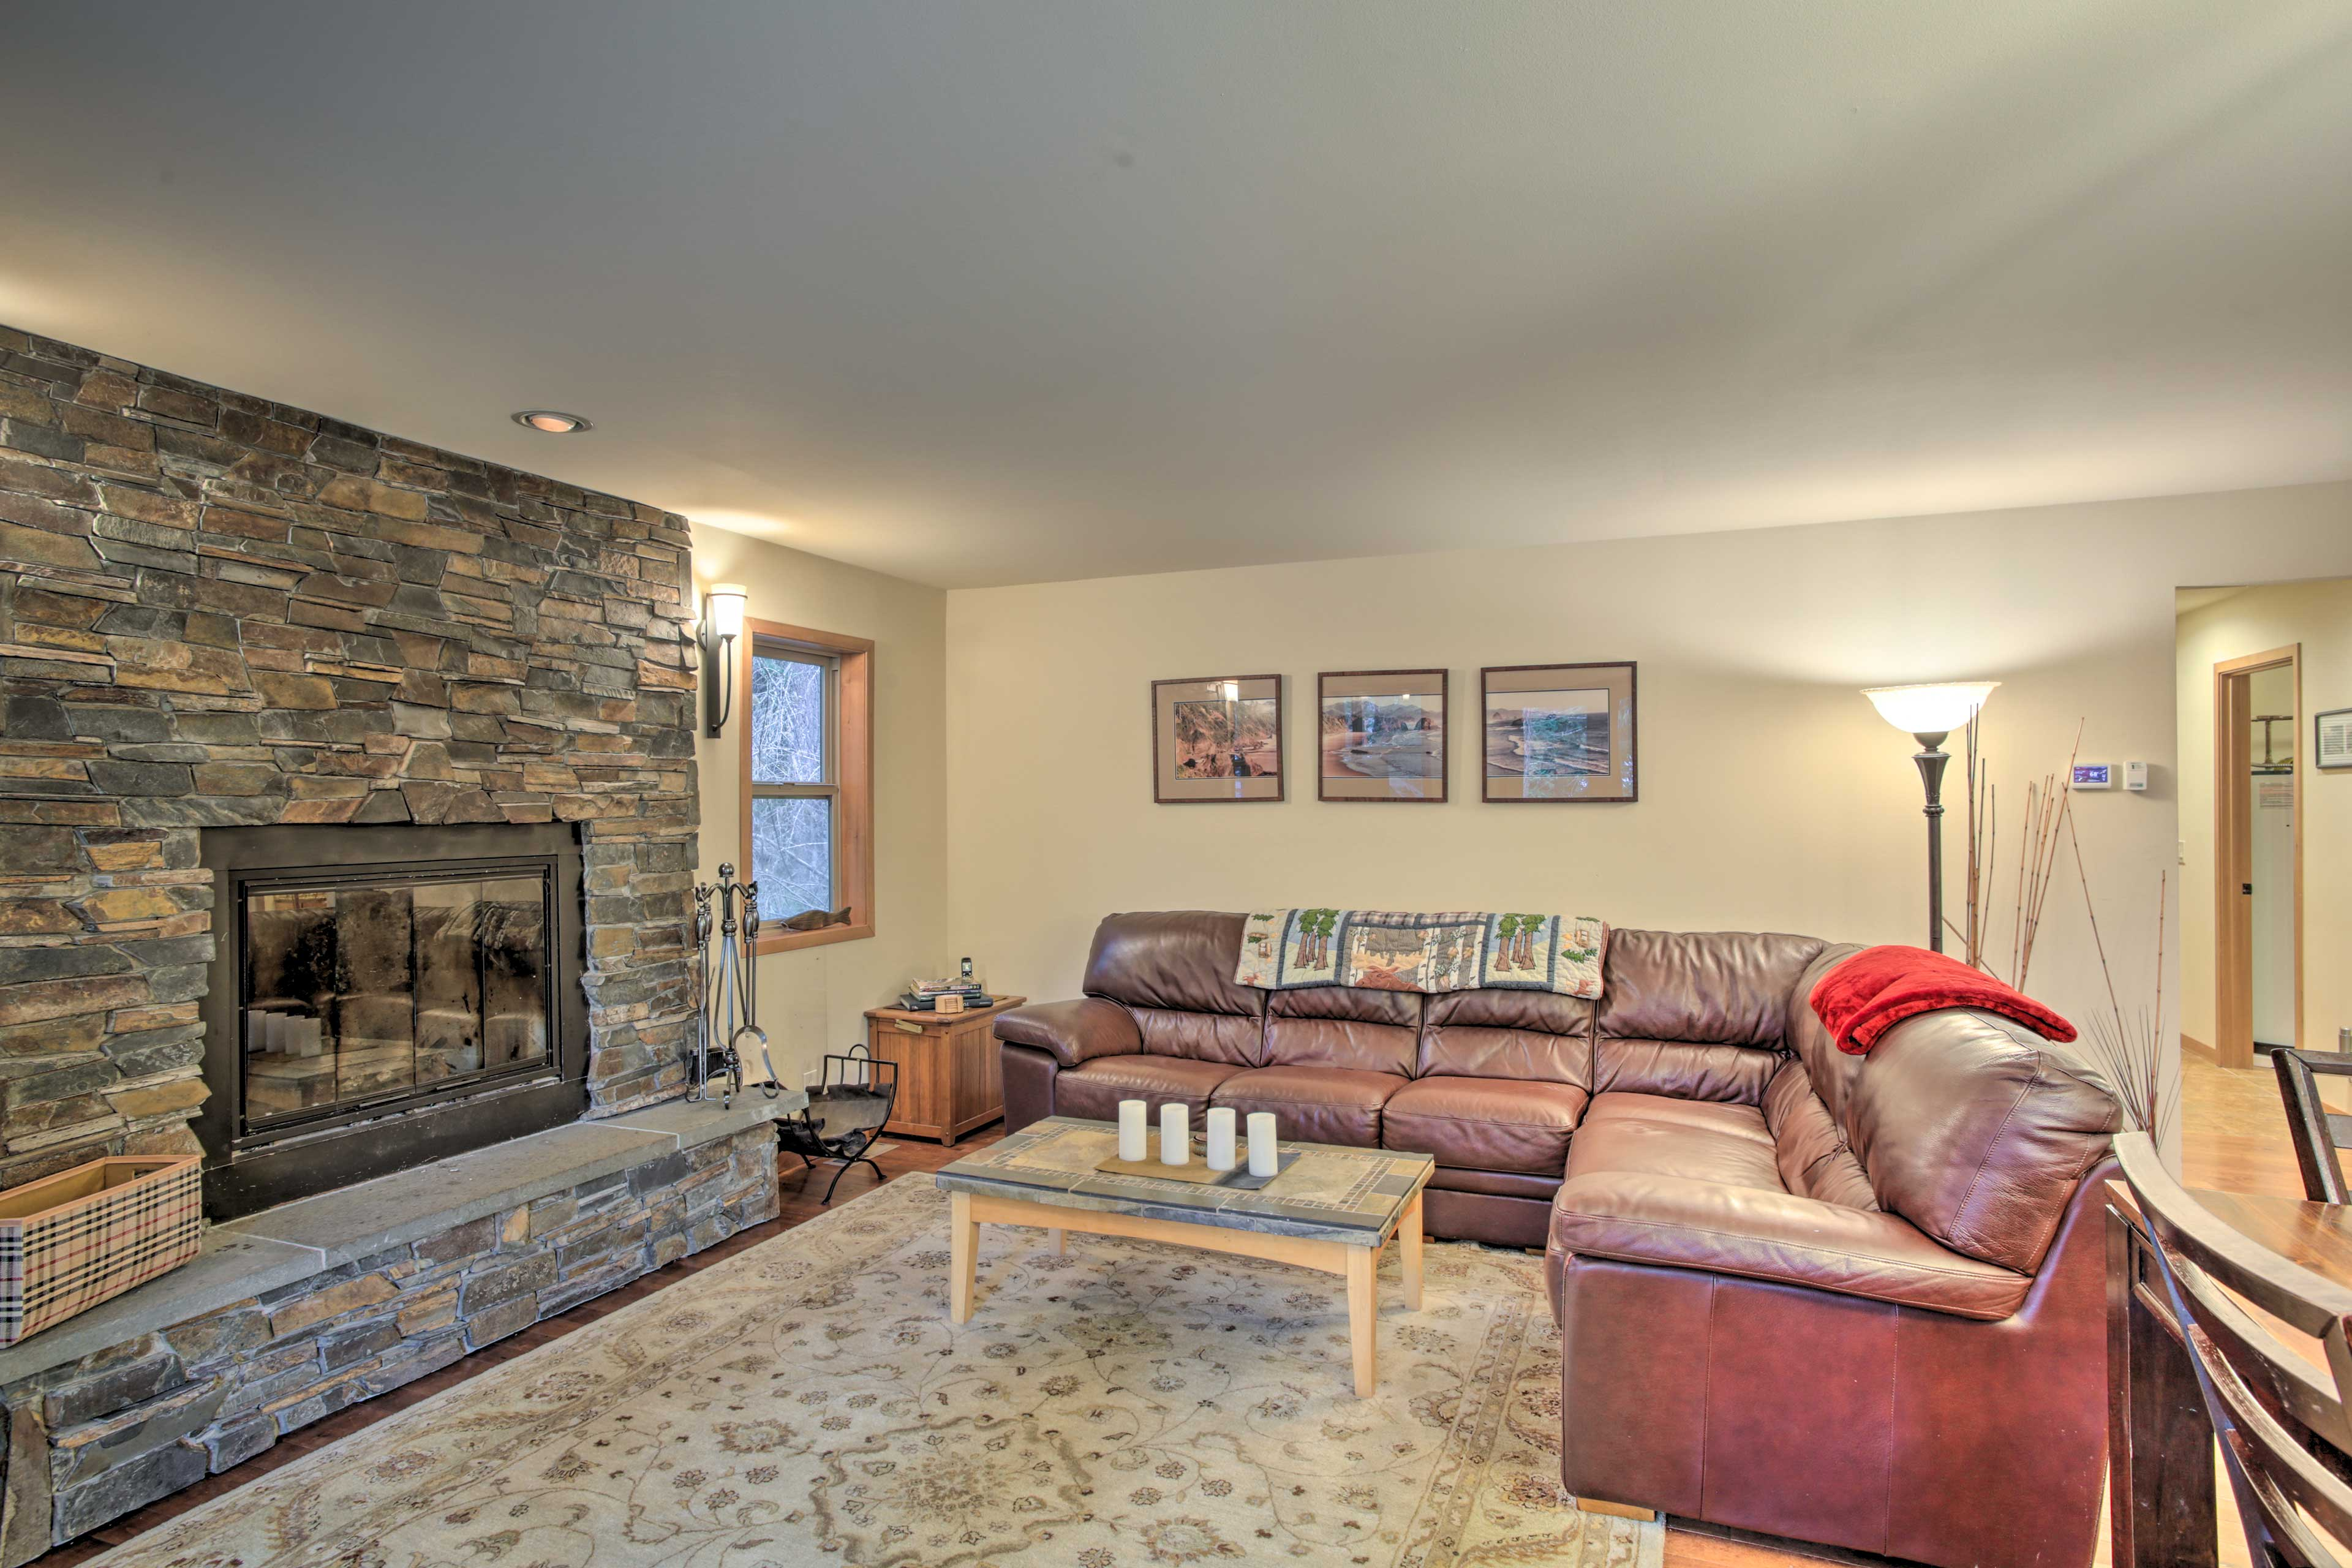 Relax in the warmth of the wood-burning fireplace.